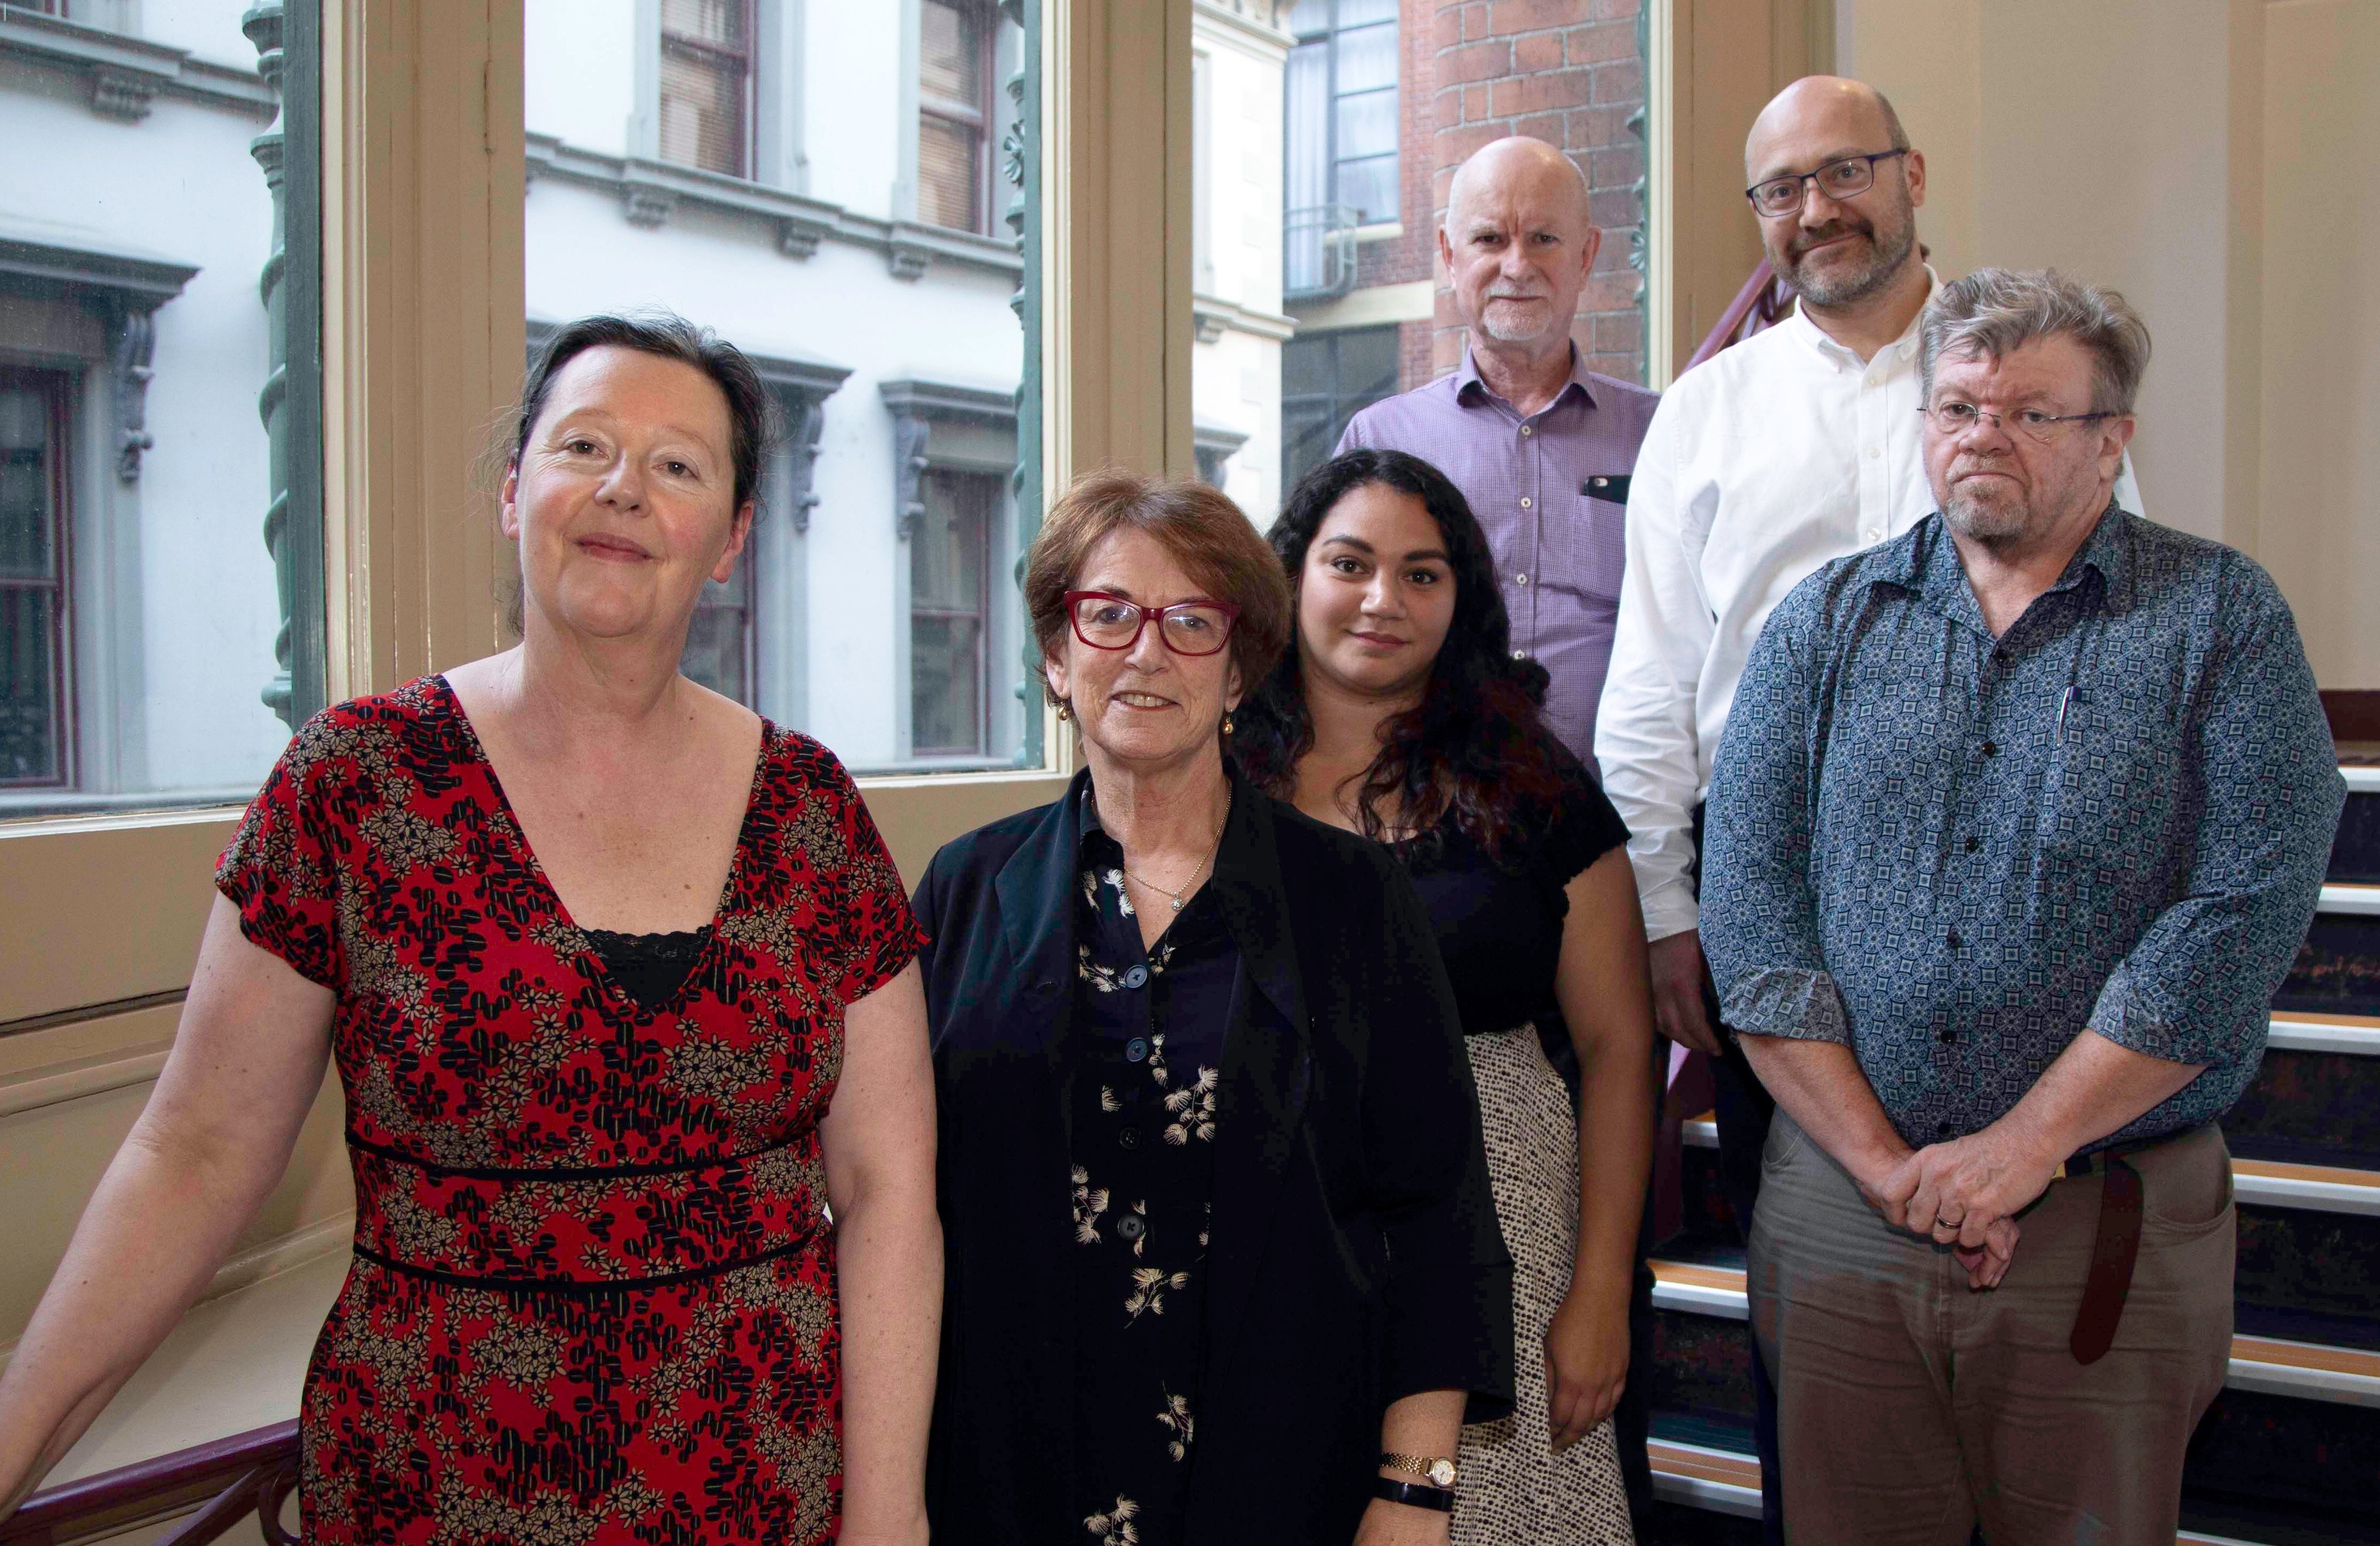 RMIT researchers and Woor Dungin staff involved in the project: Christa Momot, Bronwyn Naylor, Bianca Fazey (RMIT student), Brian Pitcher, Stan Winford, Dennis Batty